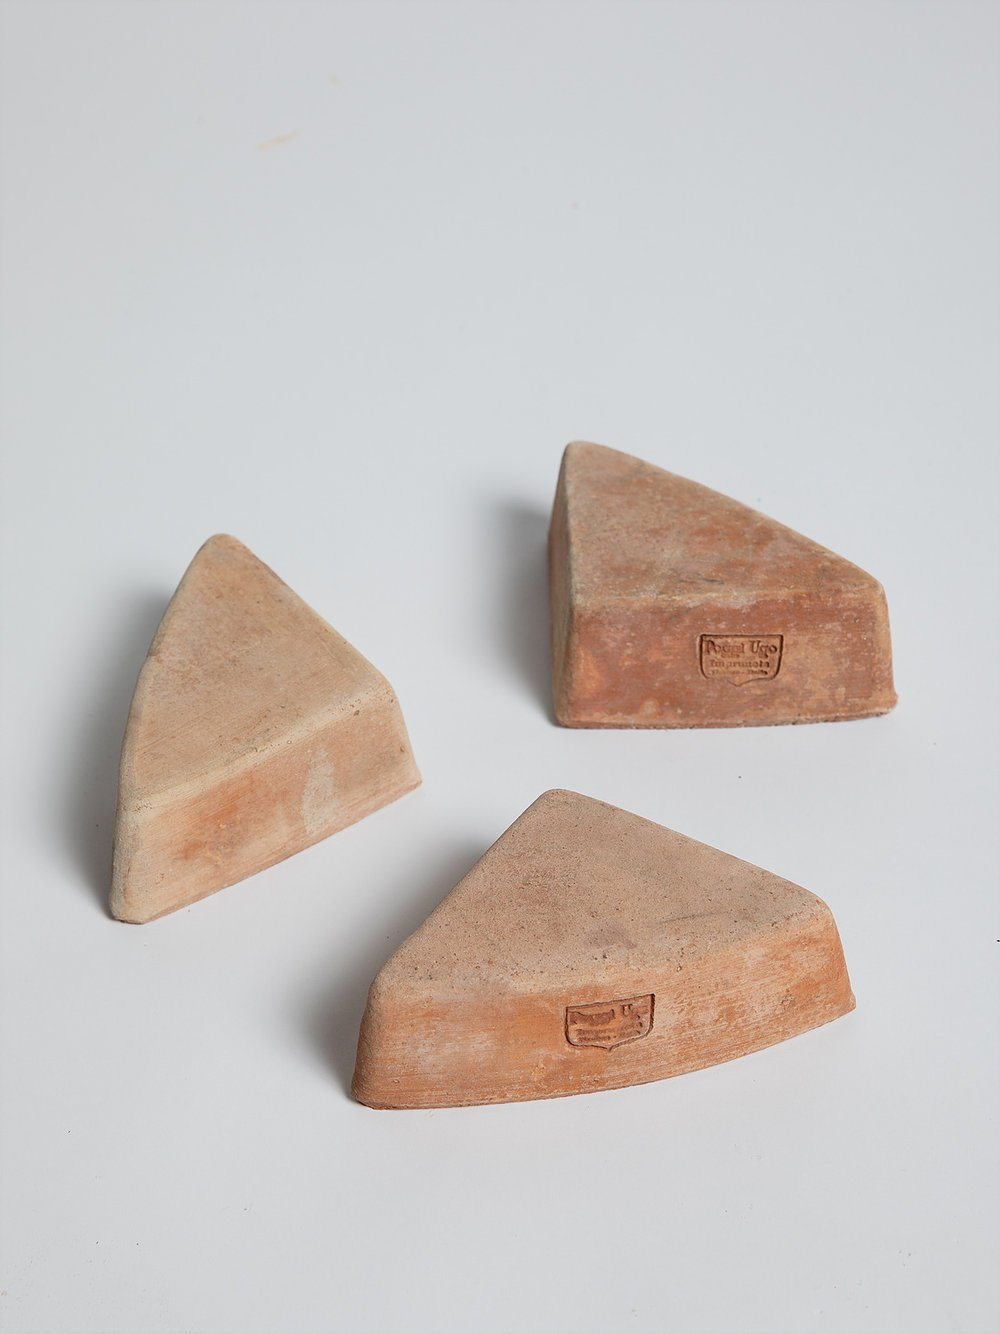 Triangle Foot - Terracotta Pottery Poggi Ugo